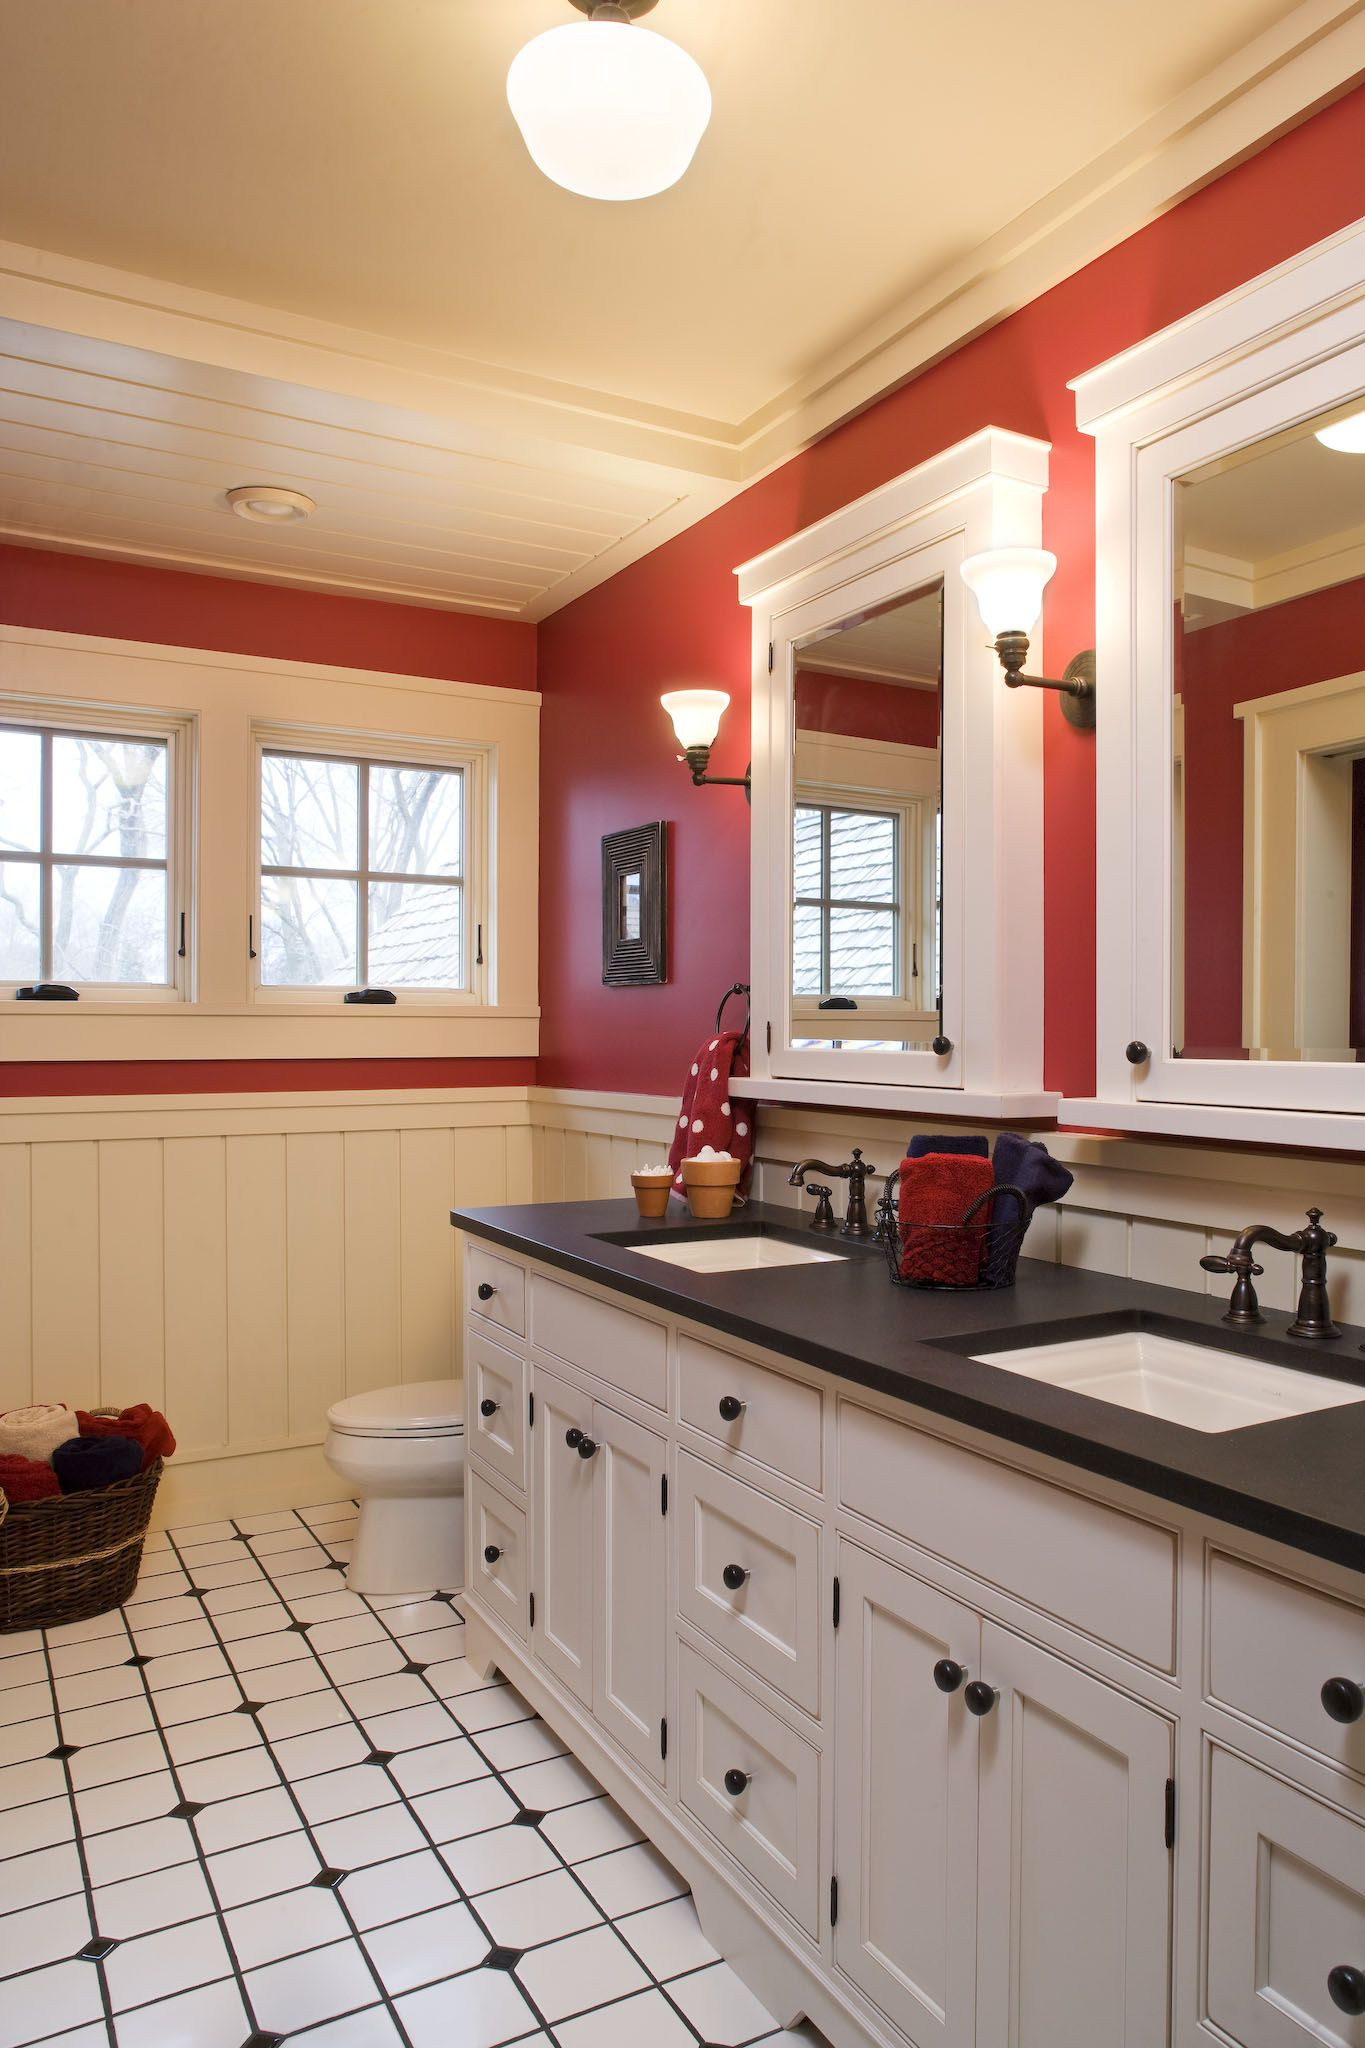 red, black, and white bathroom | Red bedroom decor ...